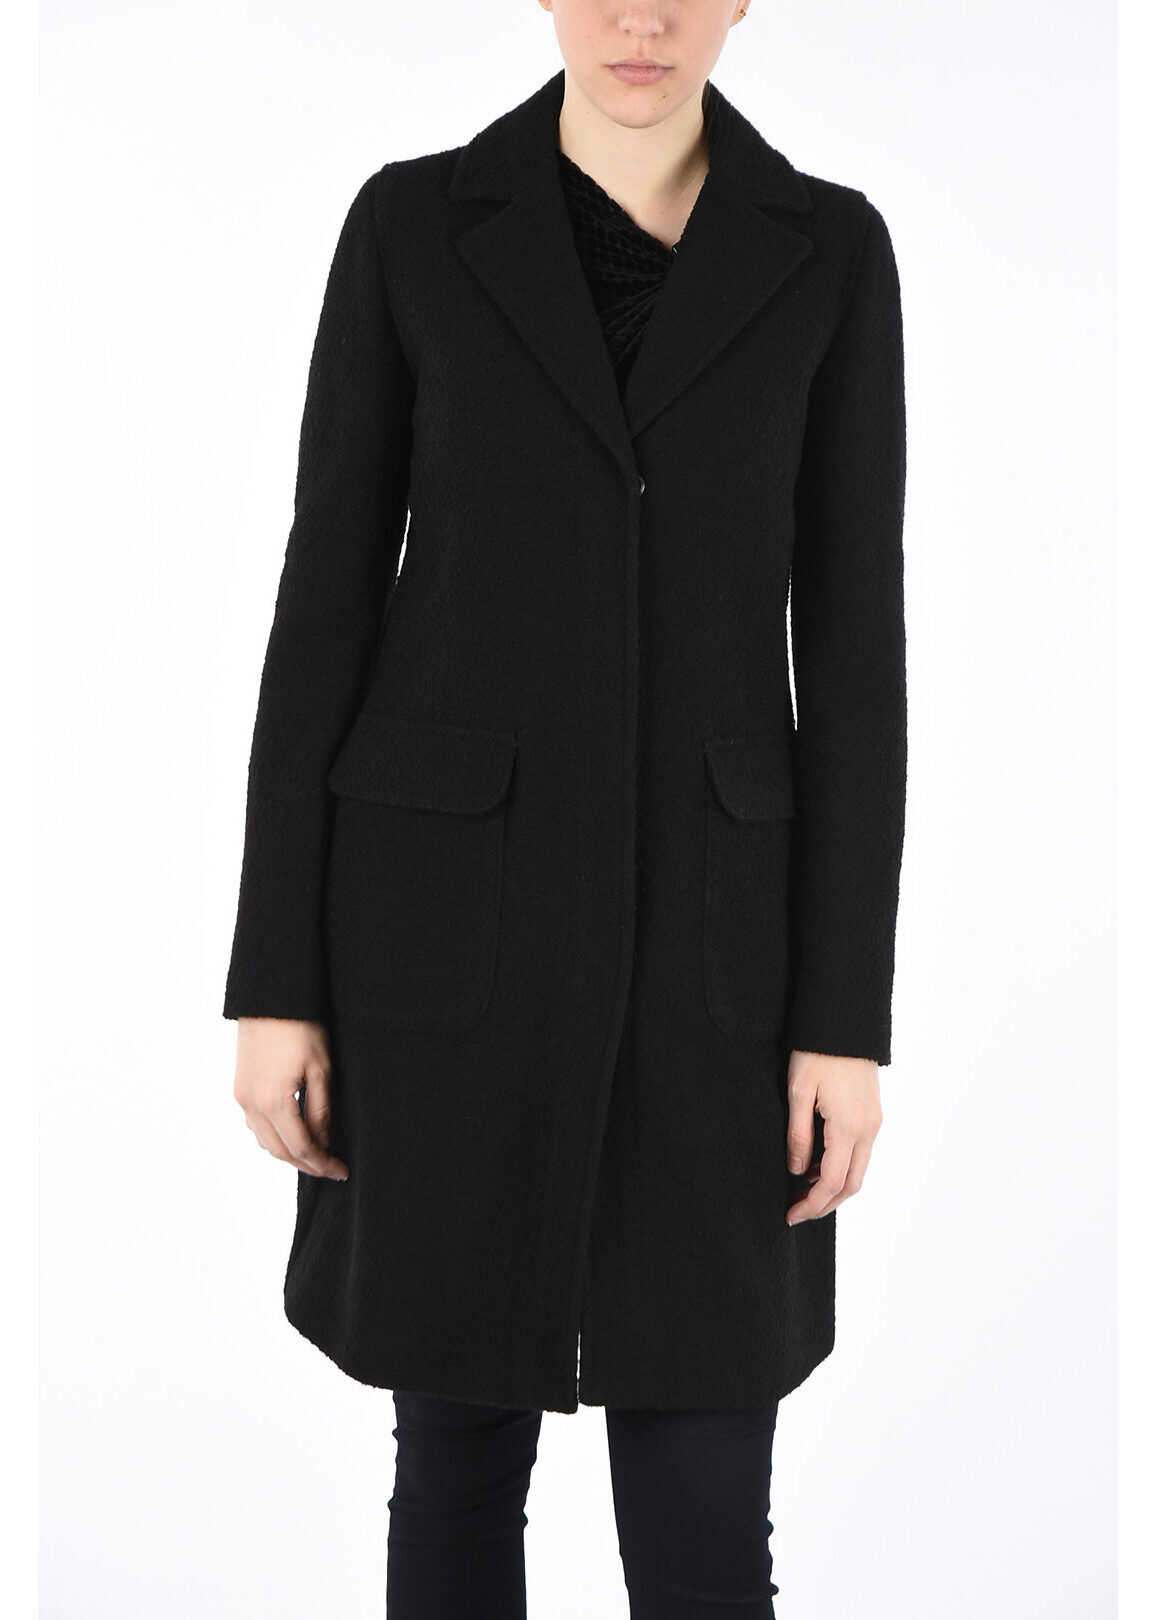 Armani ARMANI JEANS Wool Coat BLACK